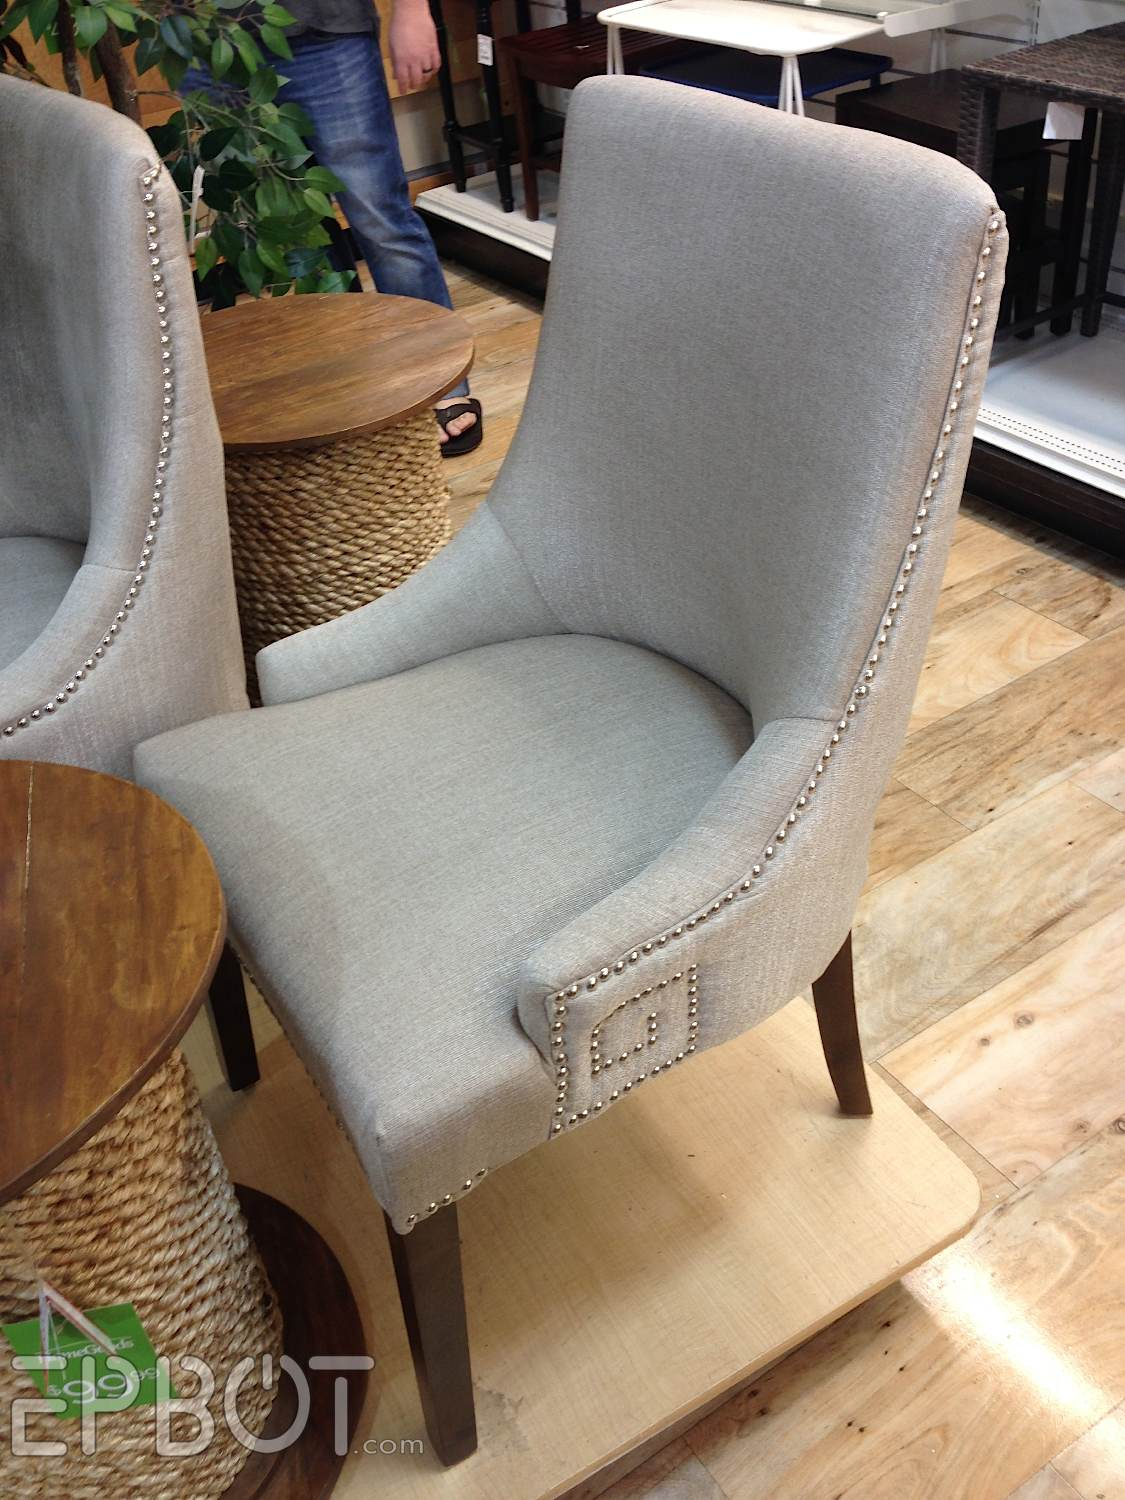 Chairs At Marshalls John Lewis Loose Dining Chair Covers Epbot The Search For Steampunk